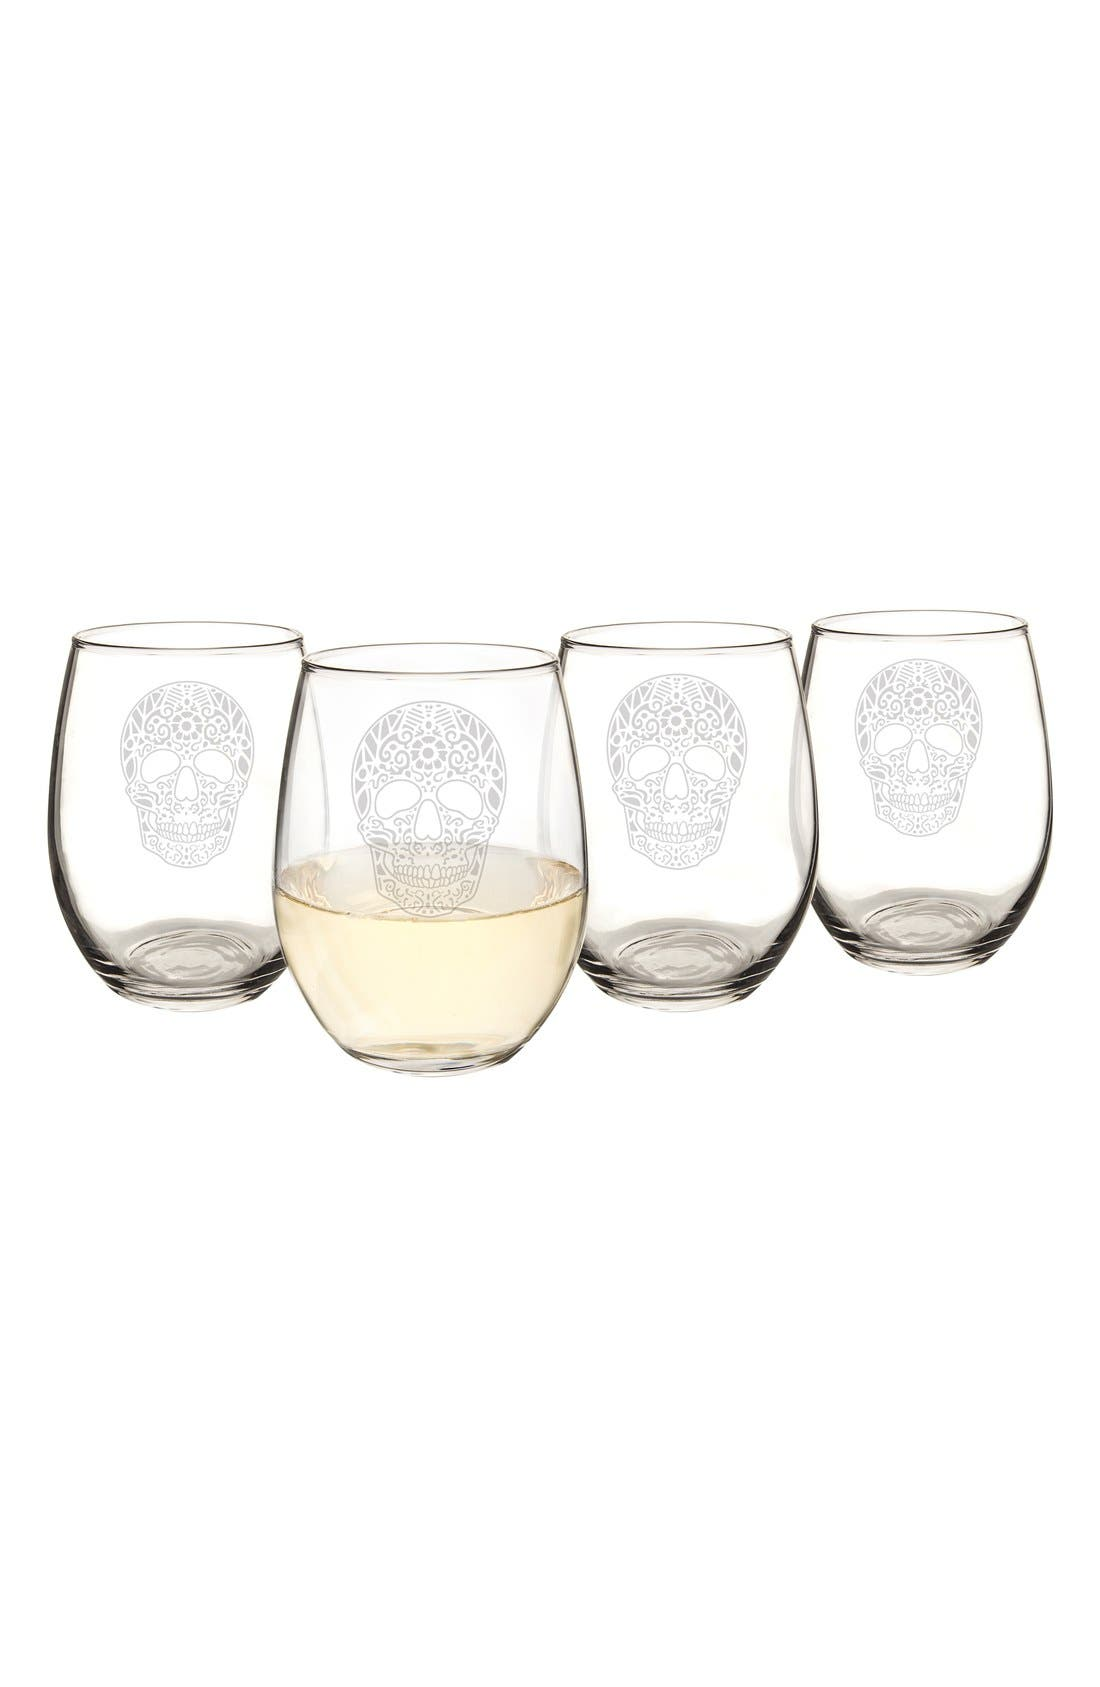 Sugar Skulls Set of 4 Stemless Wine Glasses,                             Alternate thumbnail 2, color,                             CLEAR